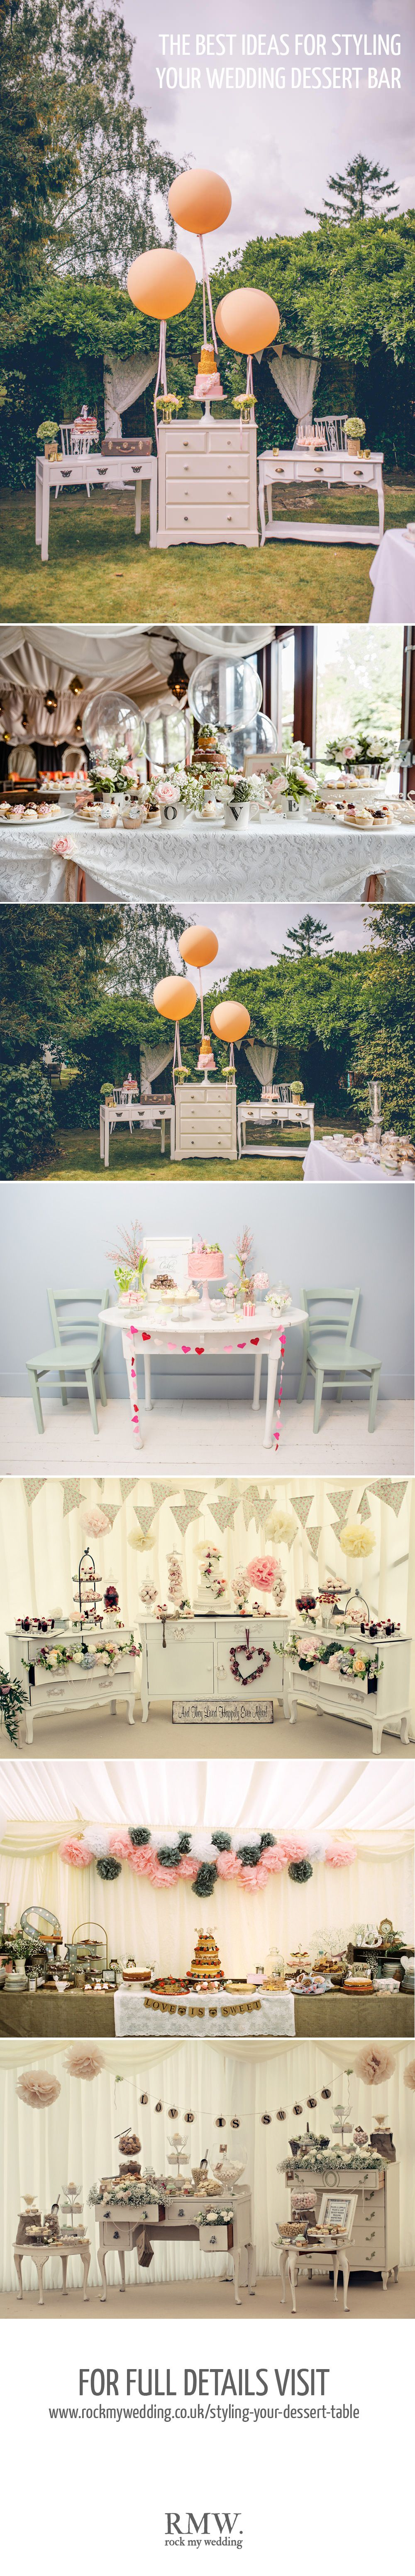 DESSERT-TABLE-STYLING-PIN-1